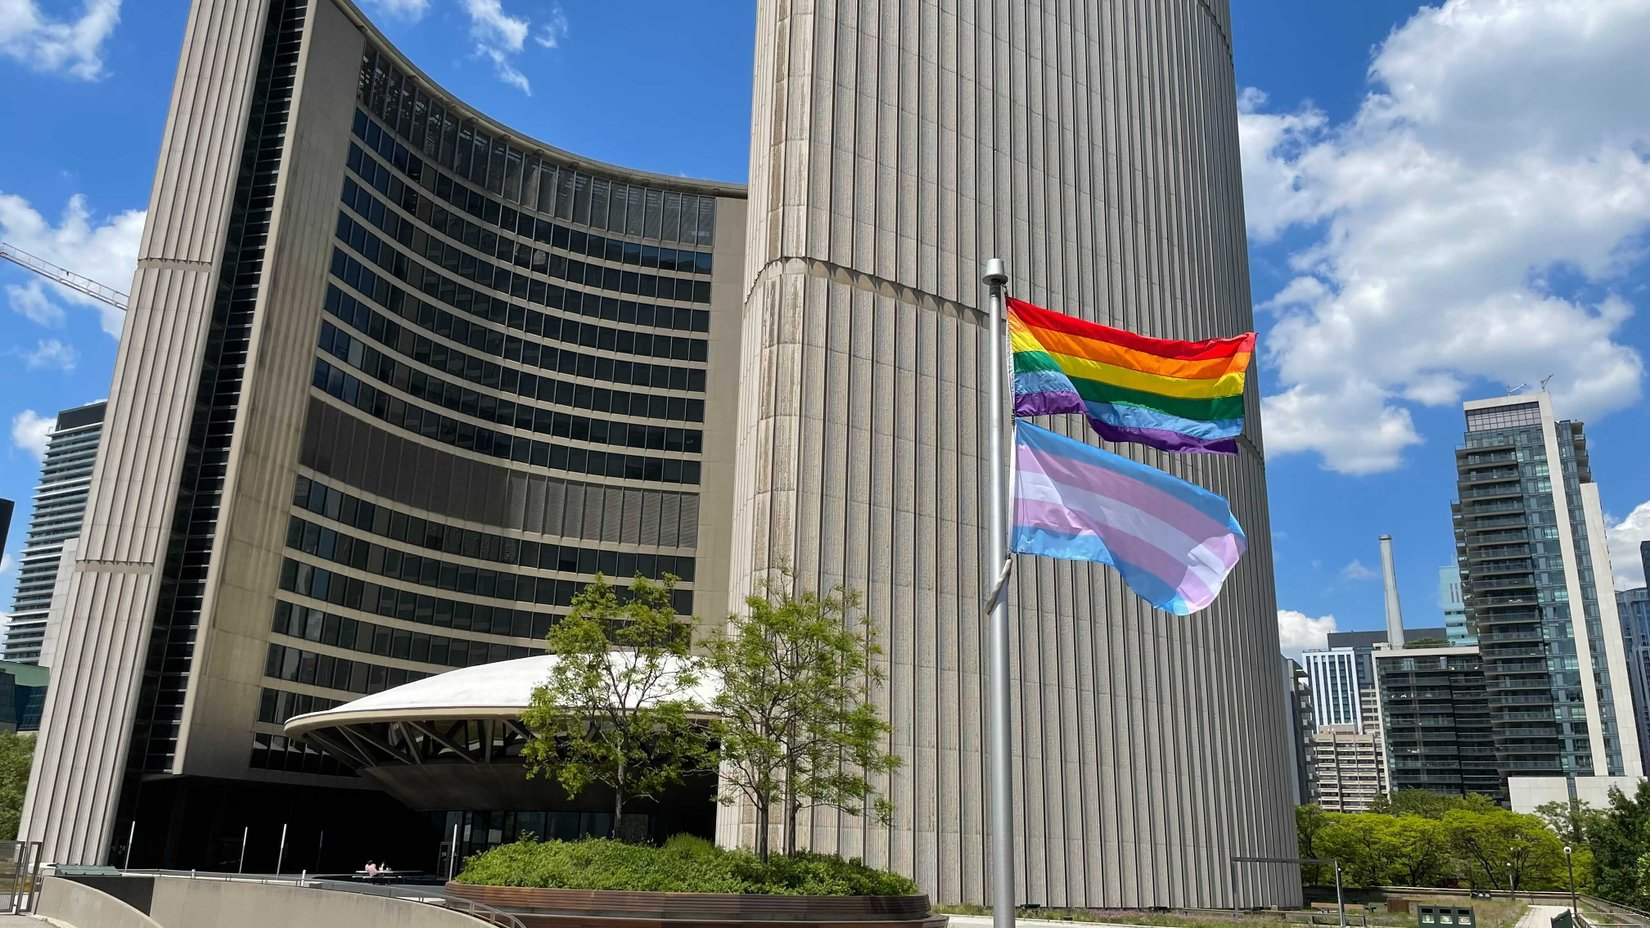 A picture of the City of Toronto Rainbow and Transgender Flag-Raising Ceremony 2021